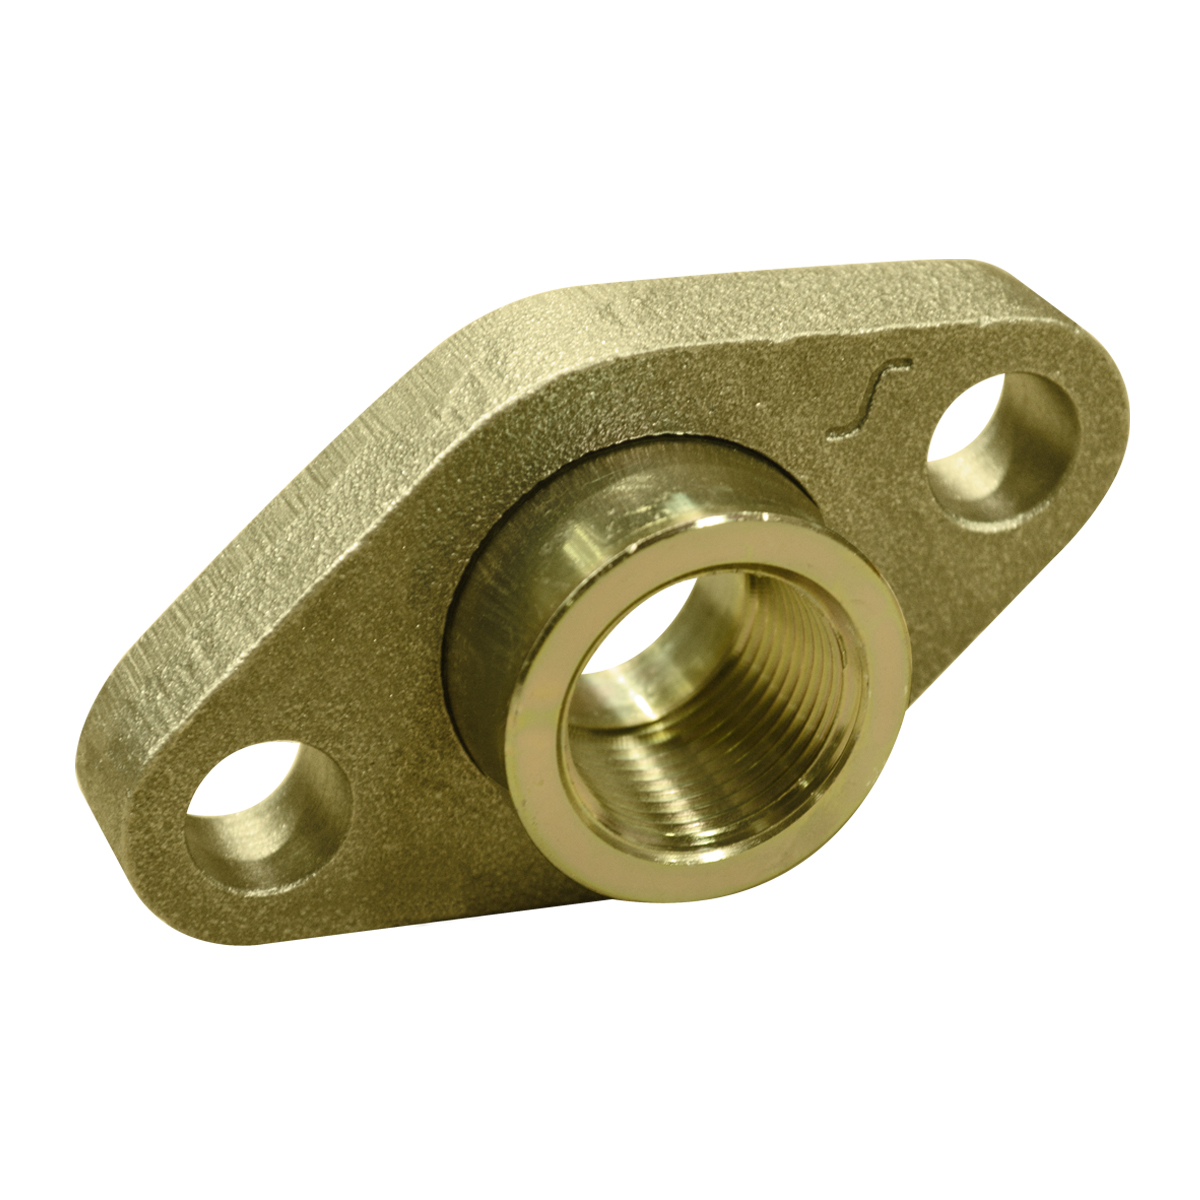 Flanged threaded swivel fittings strato